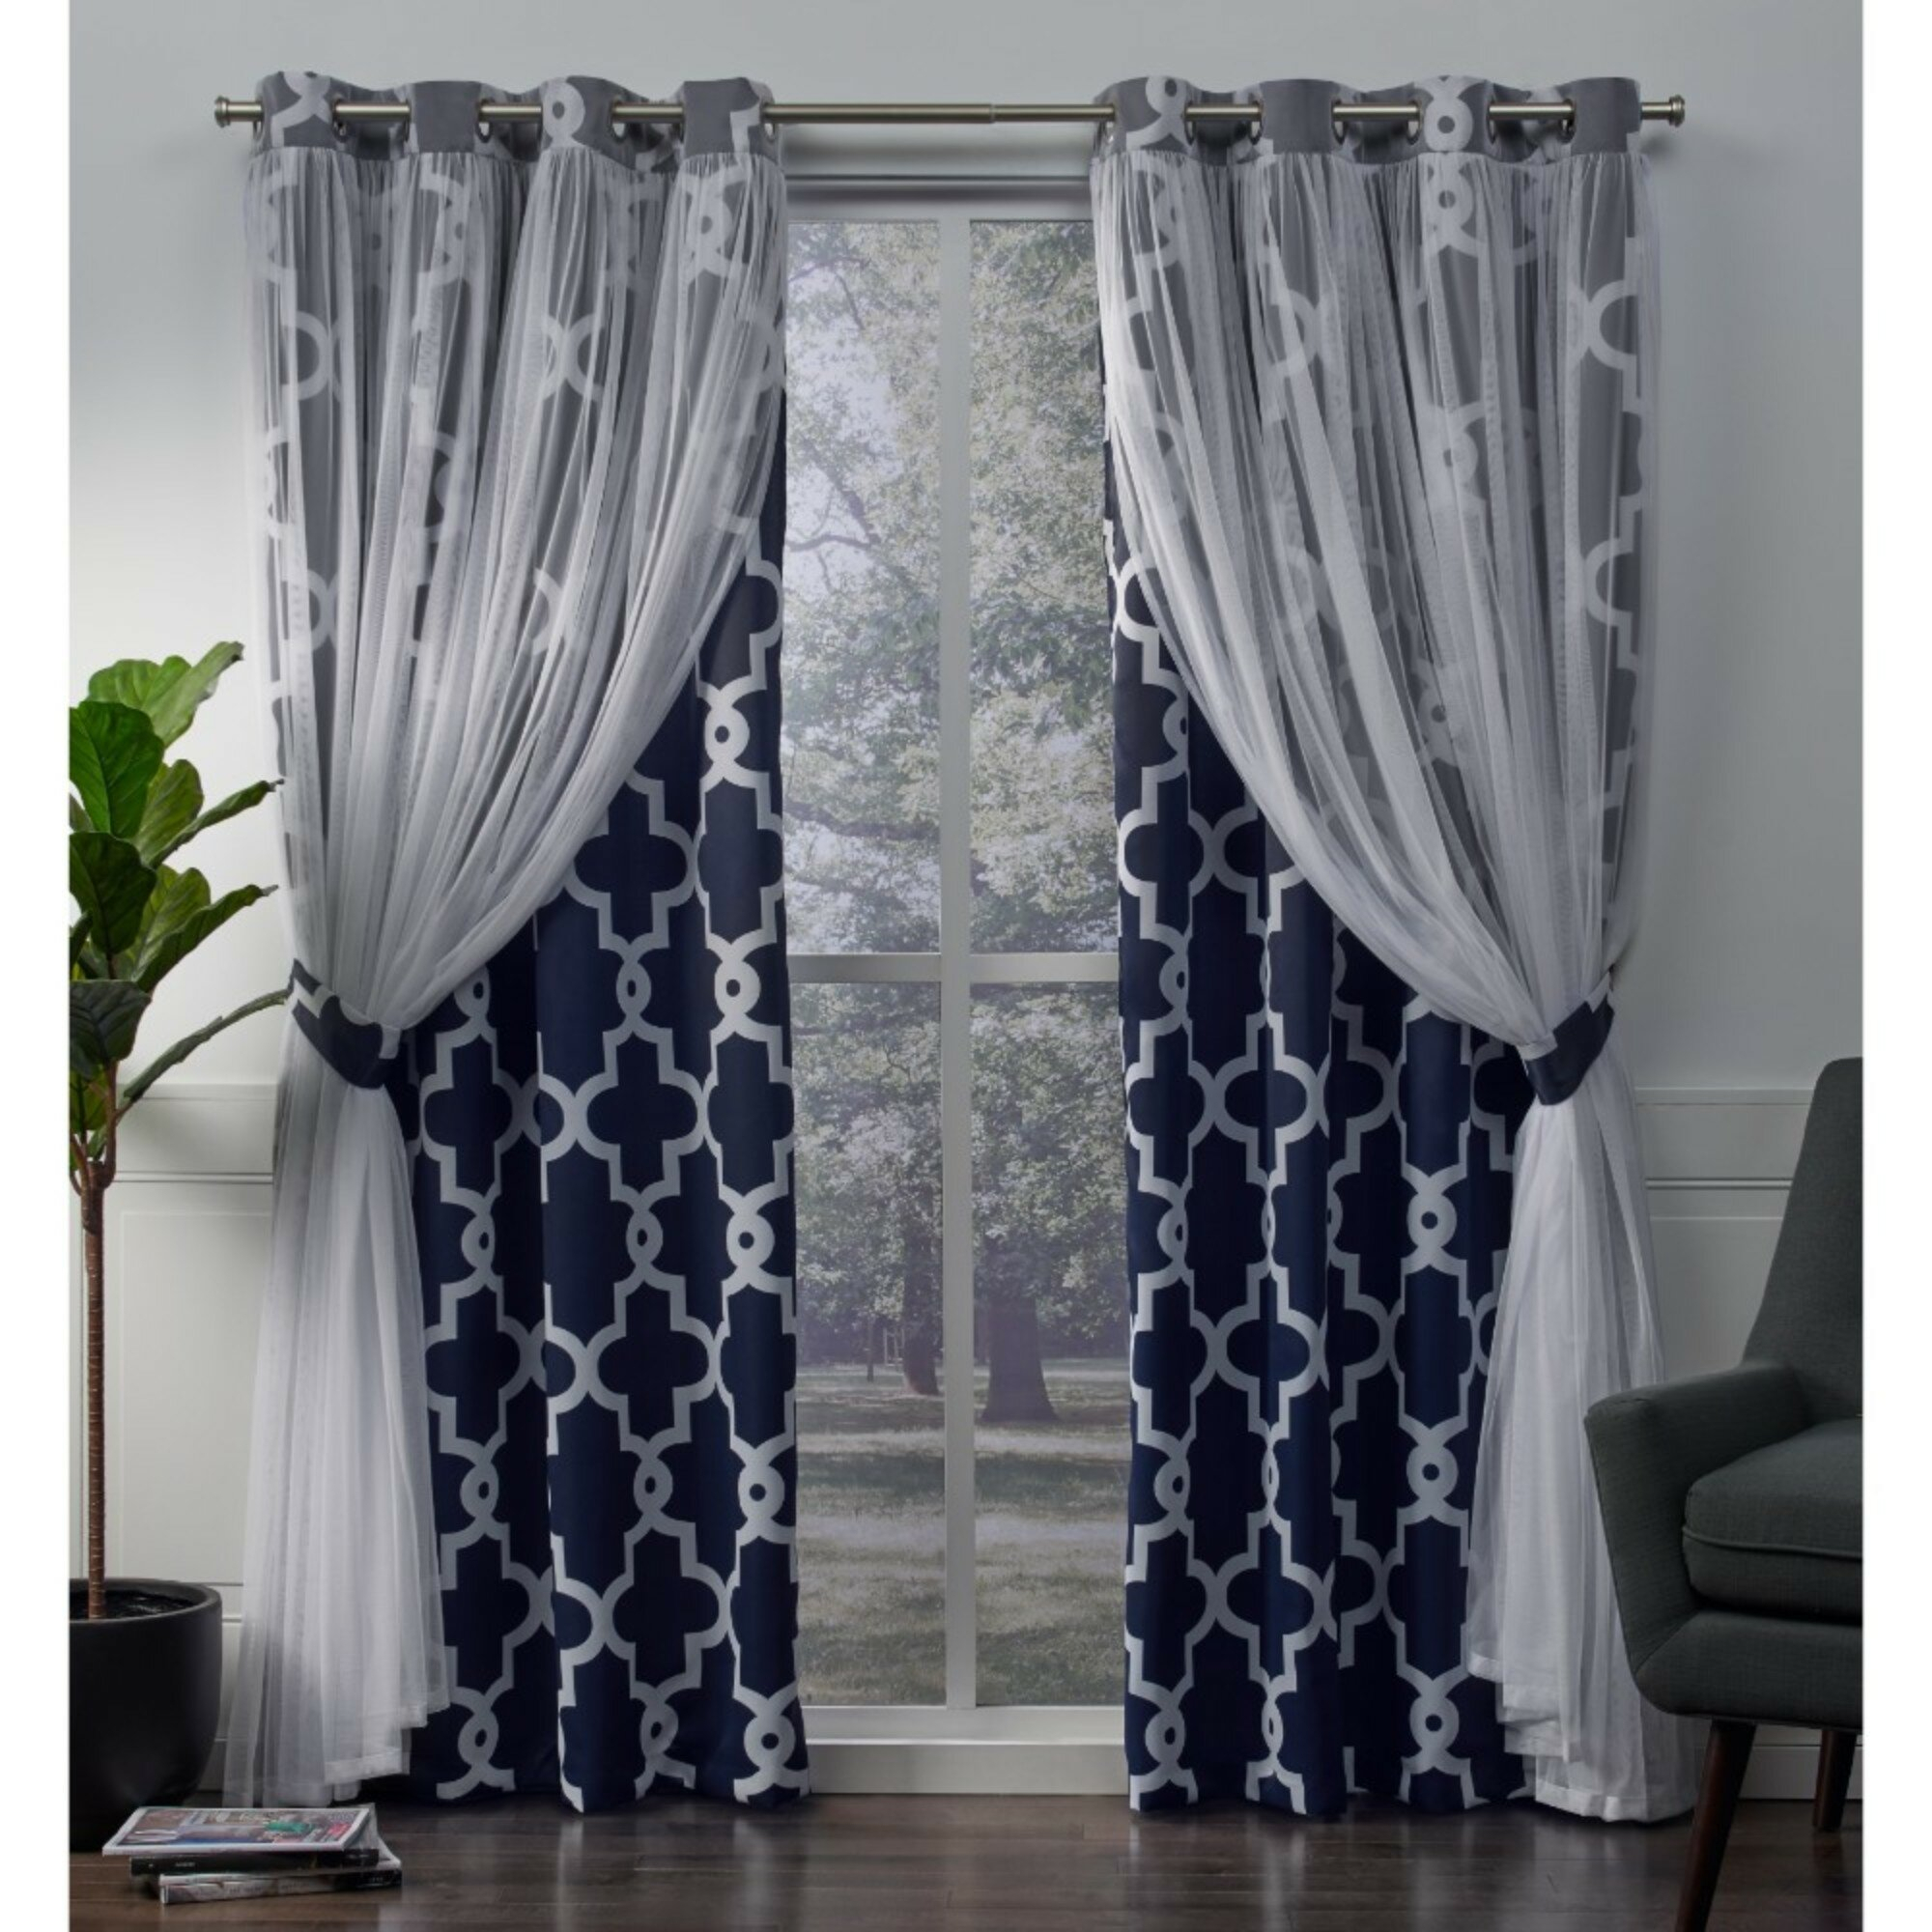 Fortunata Layered Geometric Blackout Thermal Grommet Curtain Panels Throughout Catarina Layered Curtain Panel Pairs With Grommet Top (View 15 of 20)